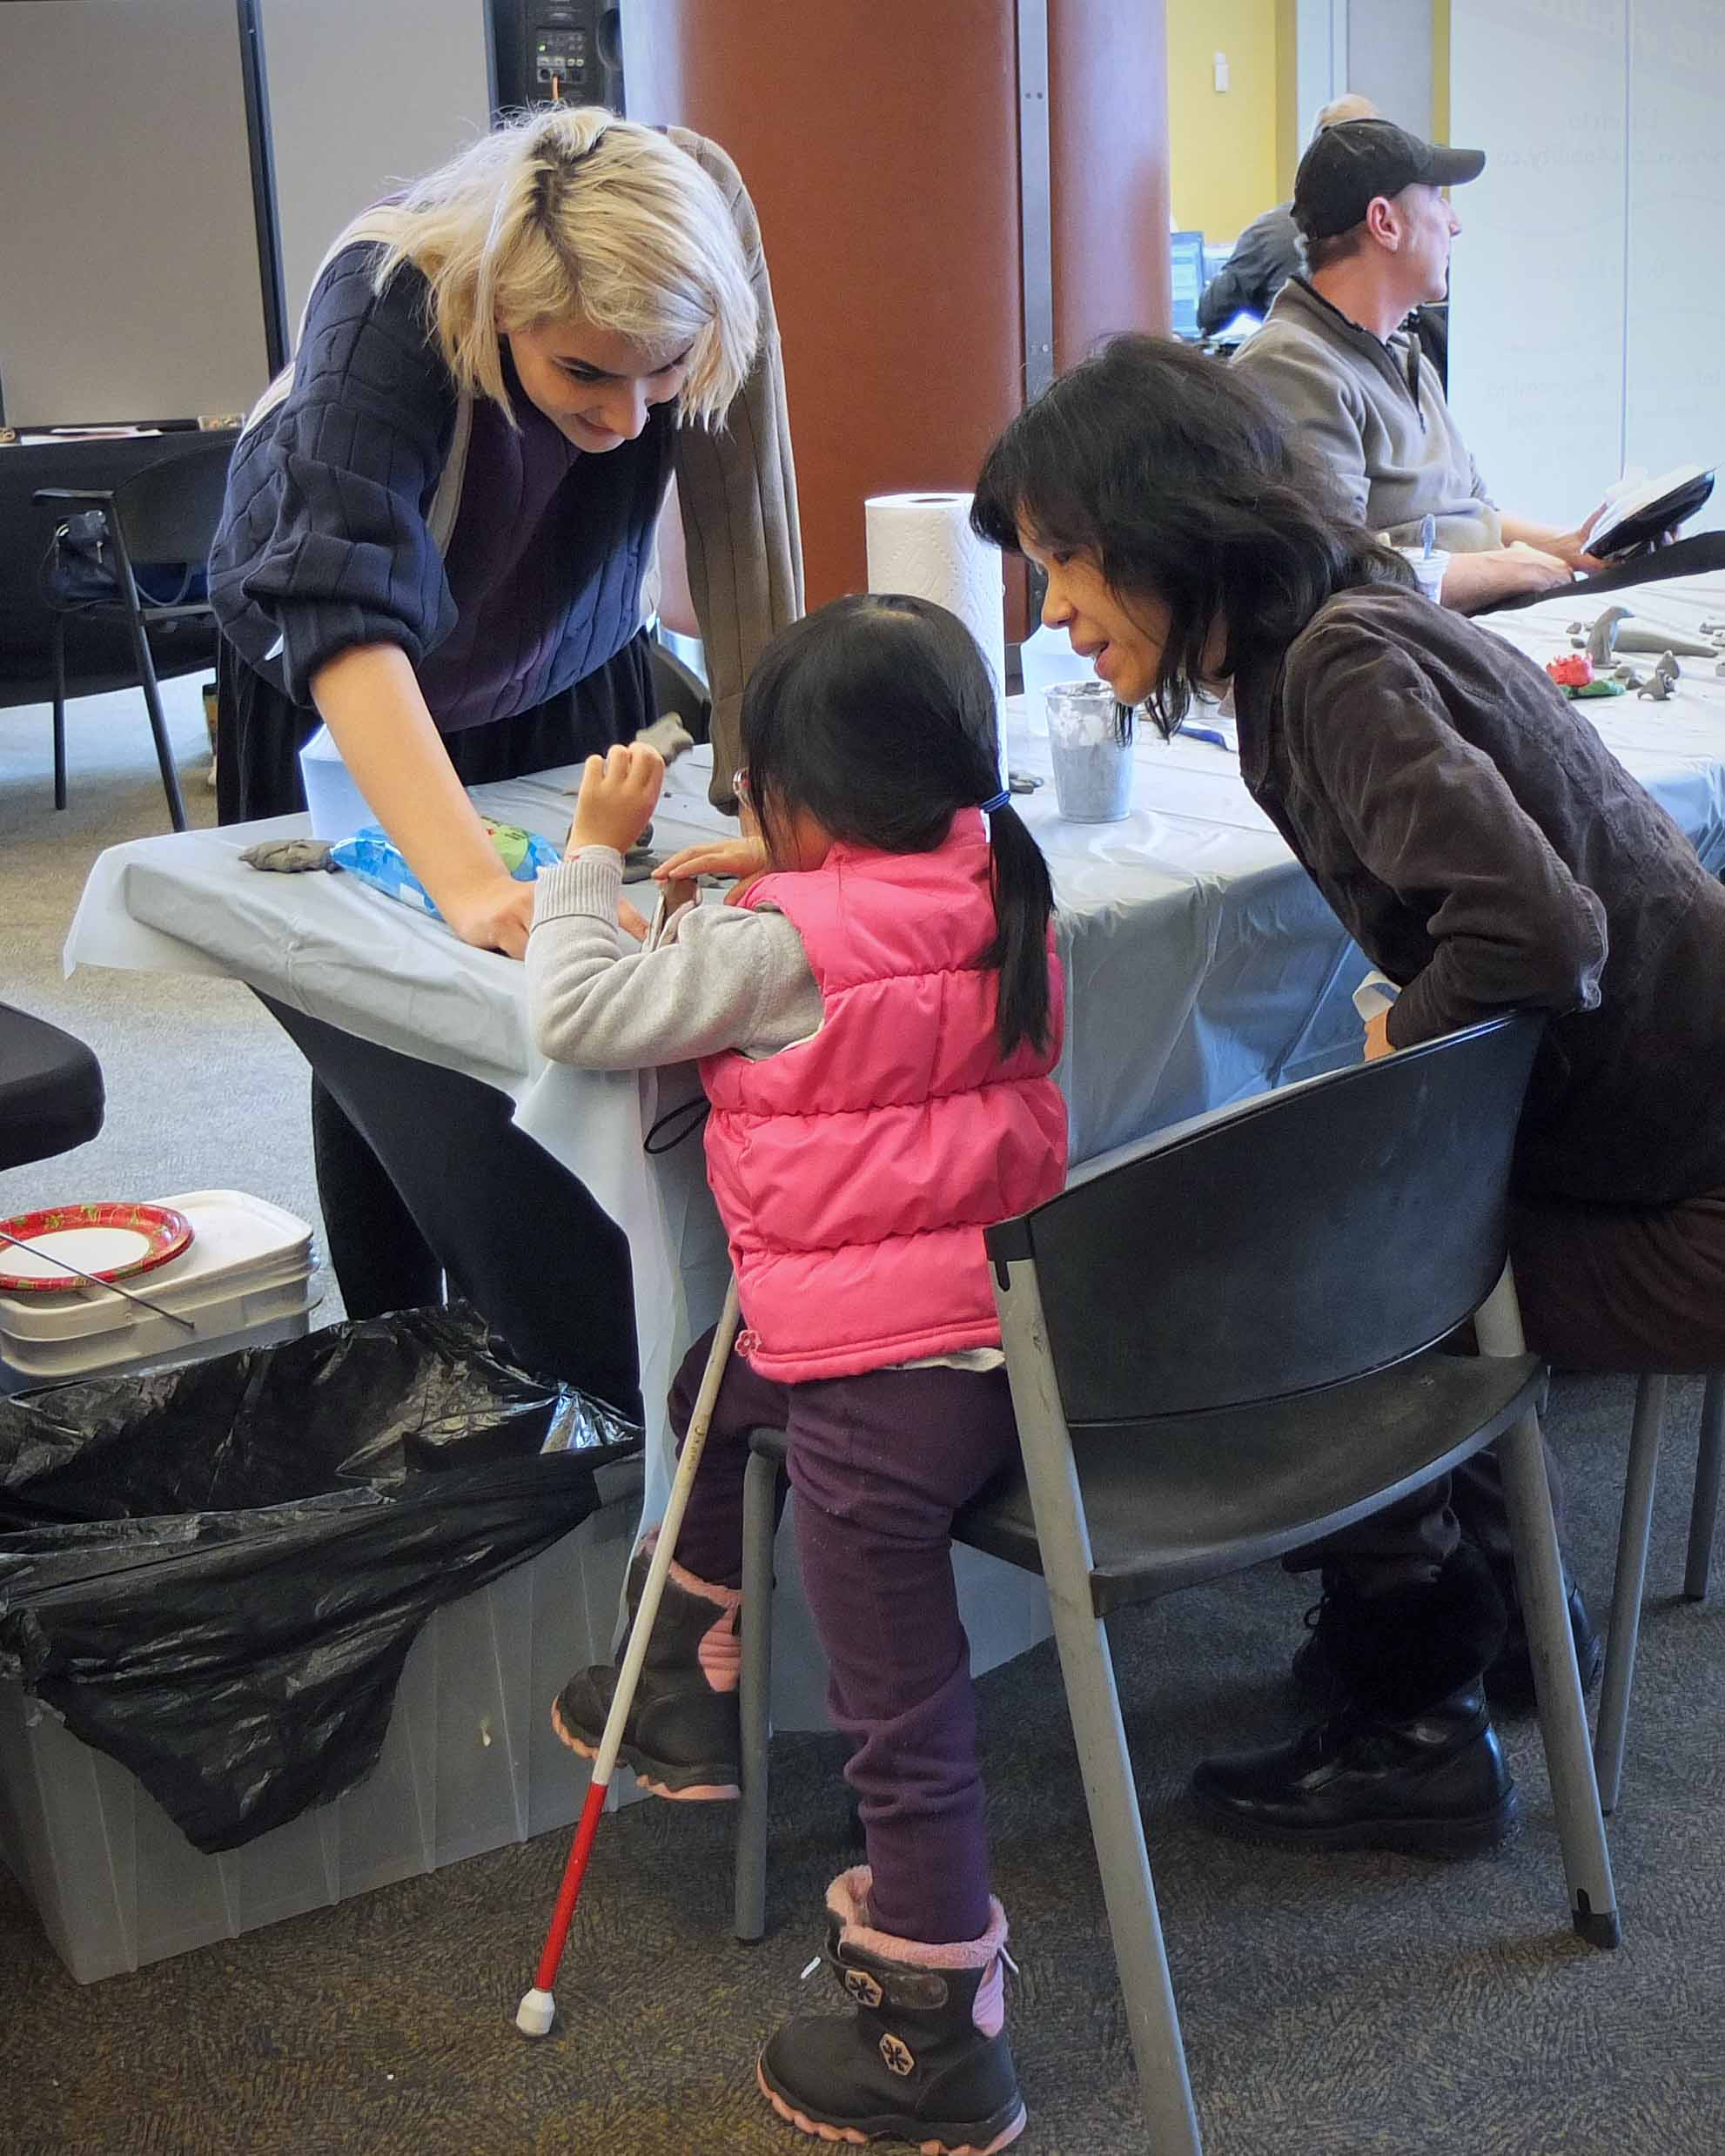 Photo Description: Noora standing behind a table with a grey table cloth teaching a young child wearing a pink vest and holding a cane with her mother seated to the right of her.